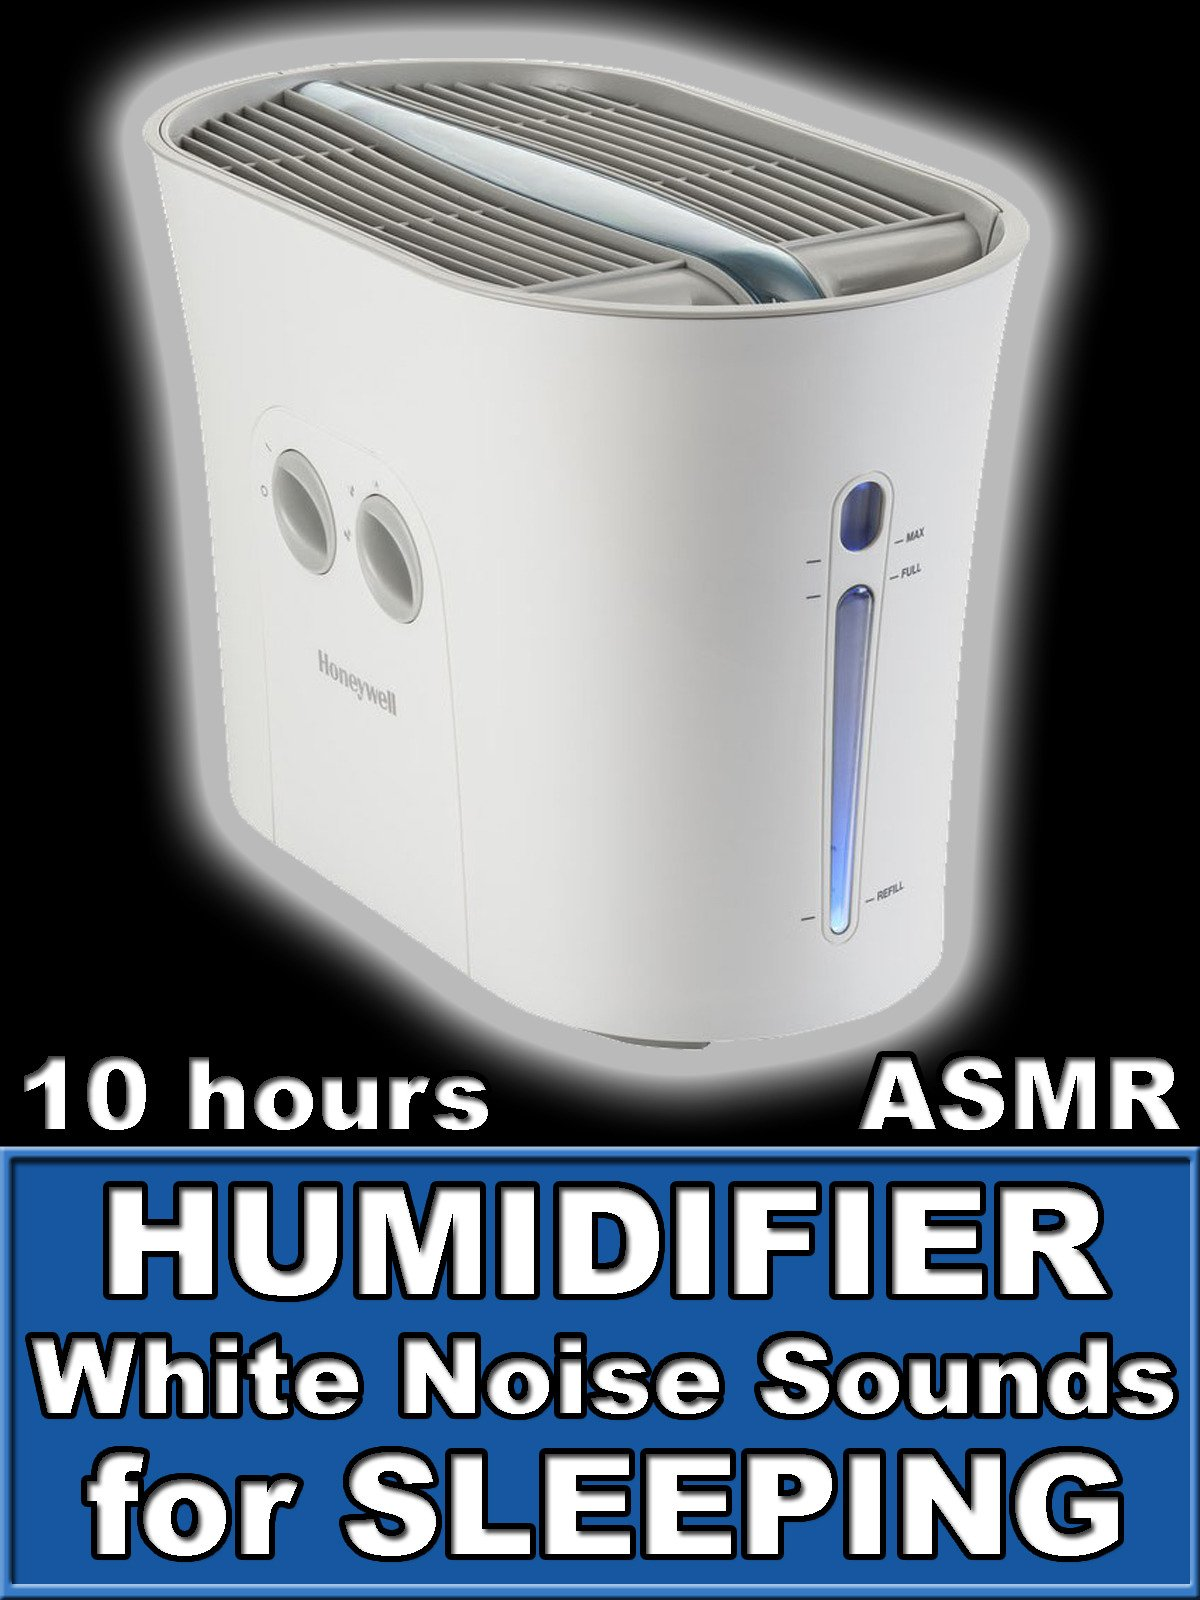 Humidifier White Noise Sounds for Sleeping 10 Hours ASMR